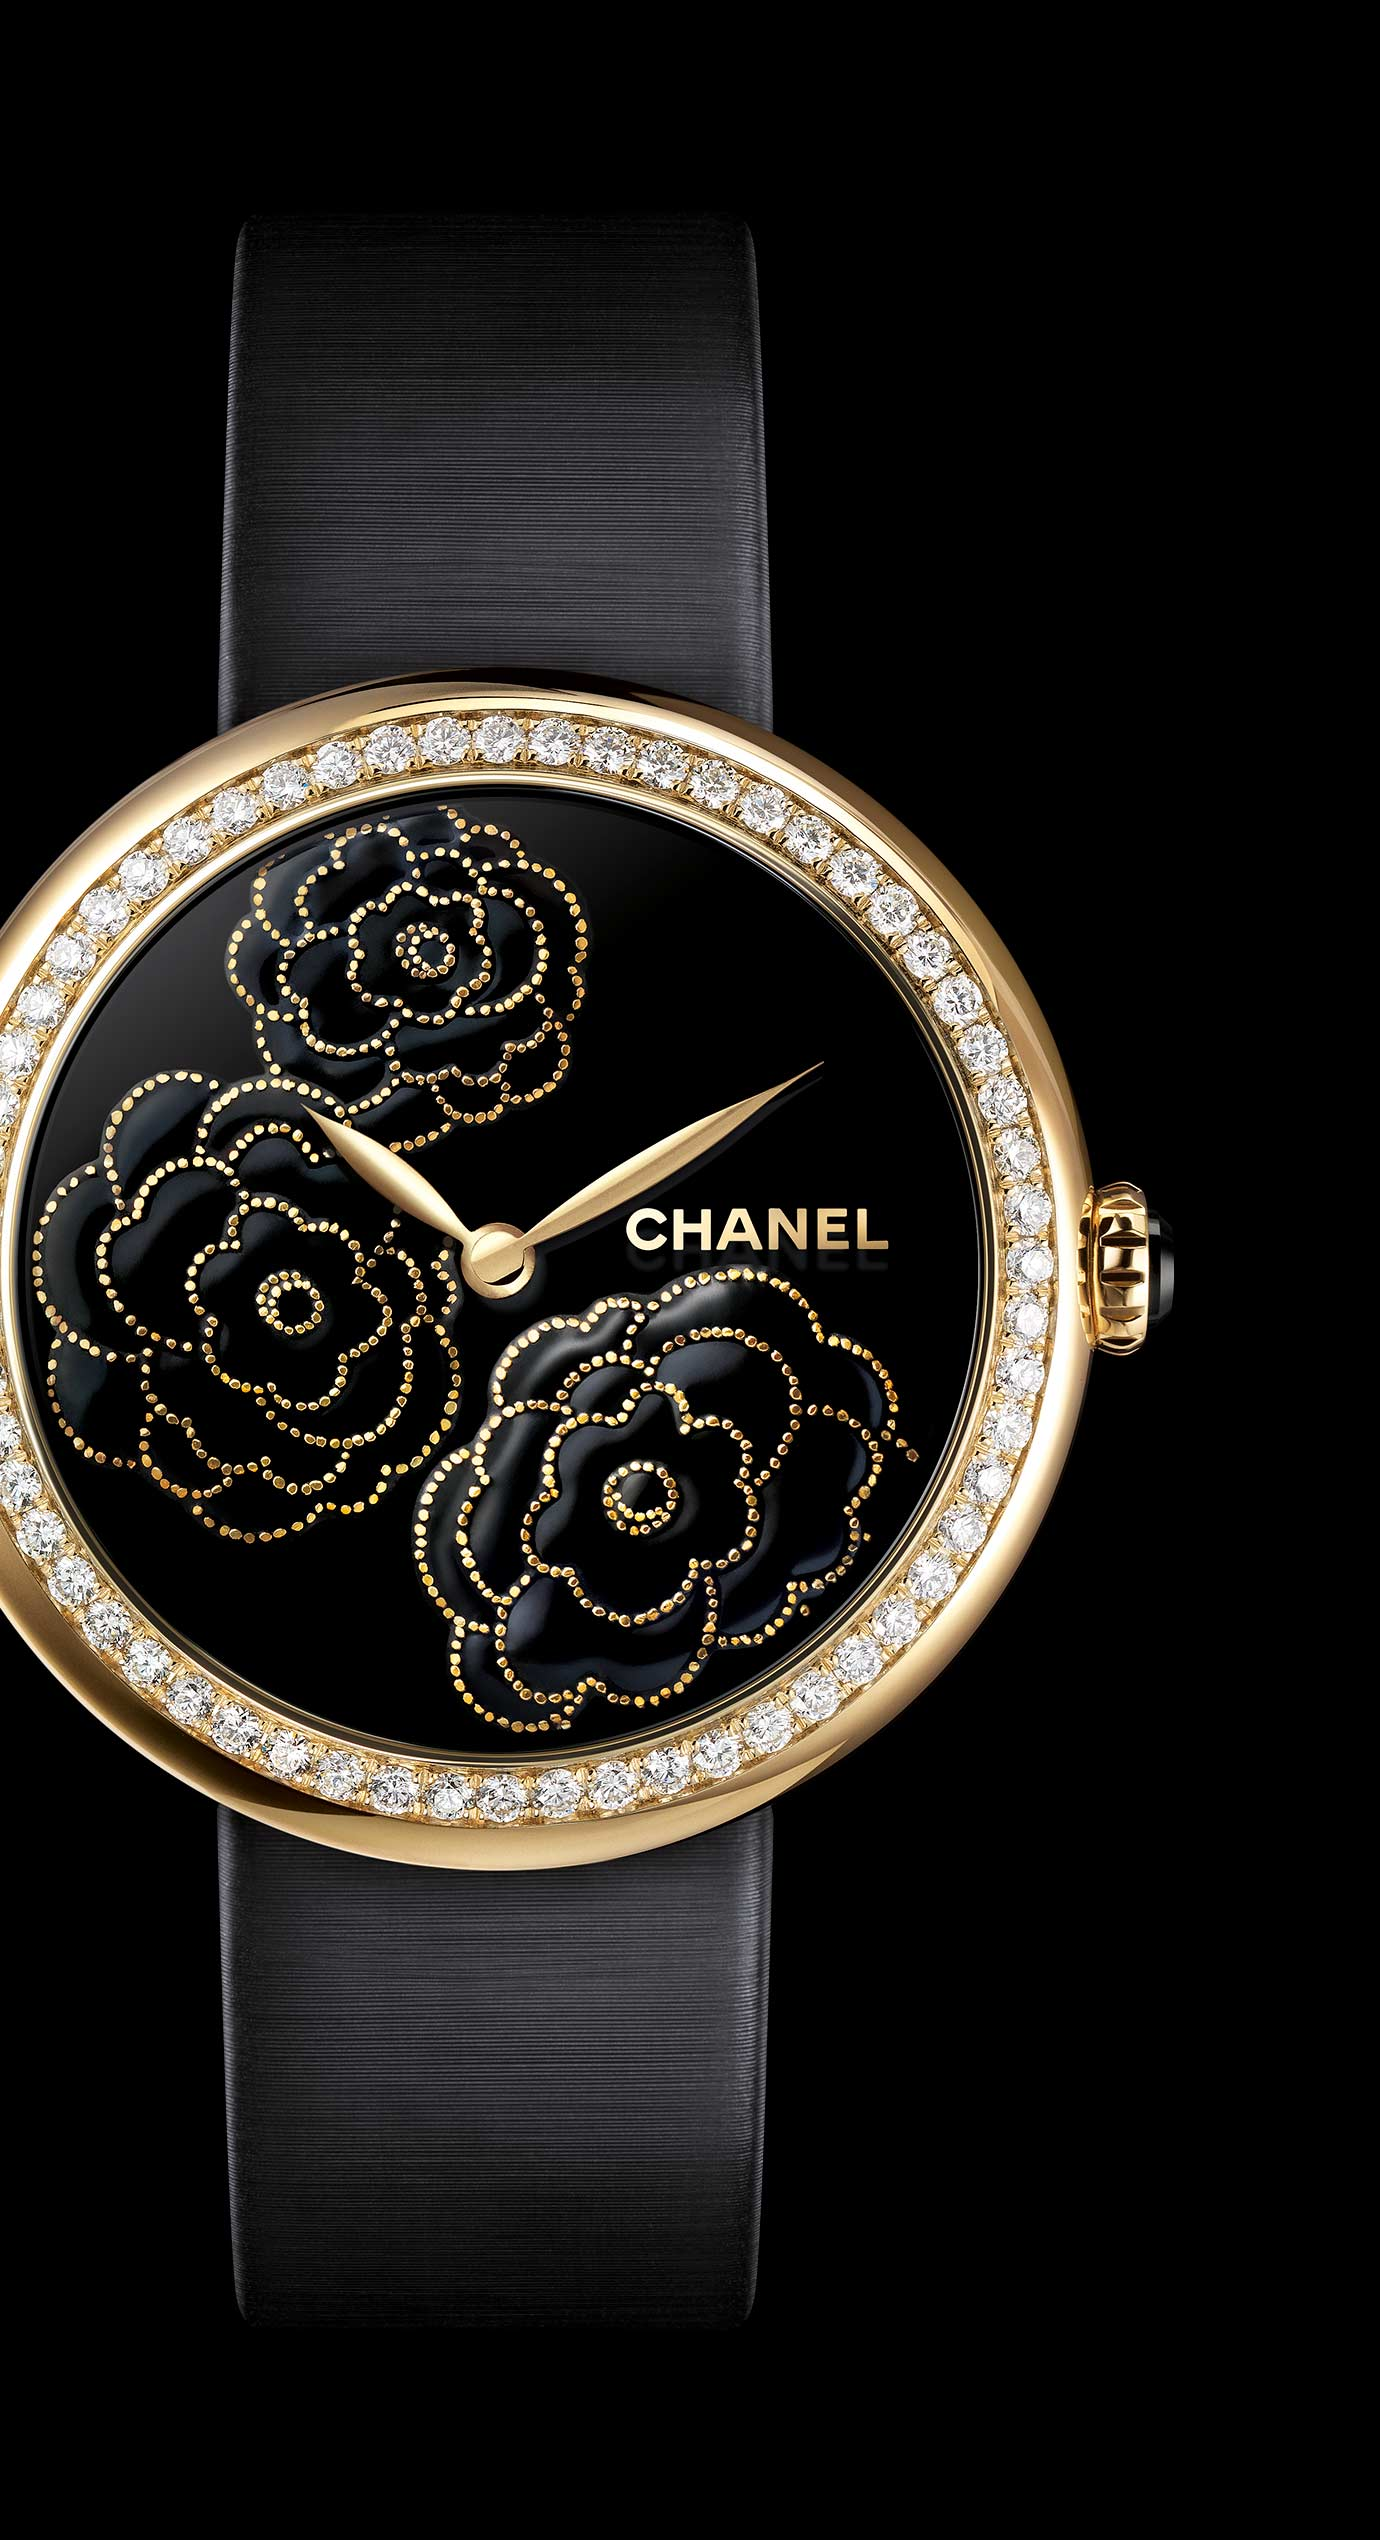 Mademoiselle Privé Camélias watch in yellow gold, black lacquer dial - Maki-e technique - Enlarged view